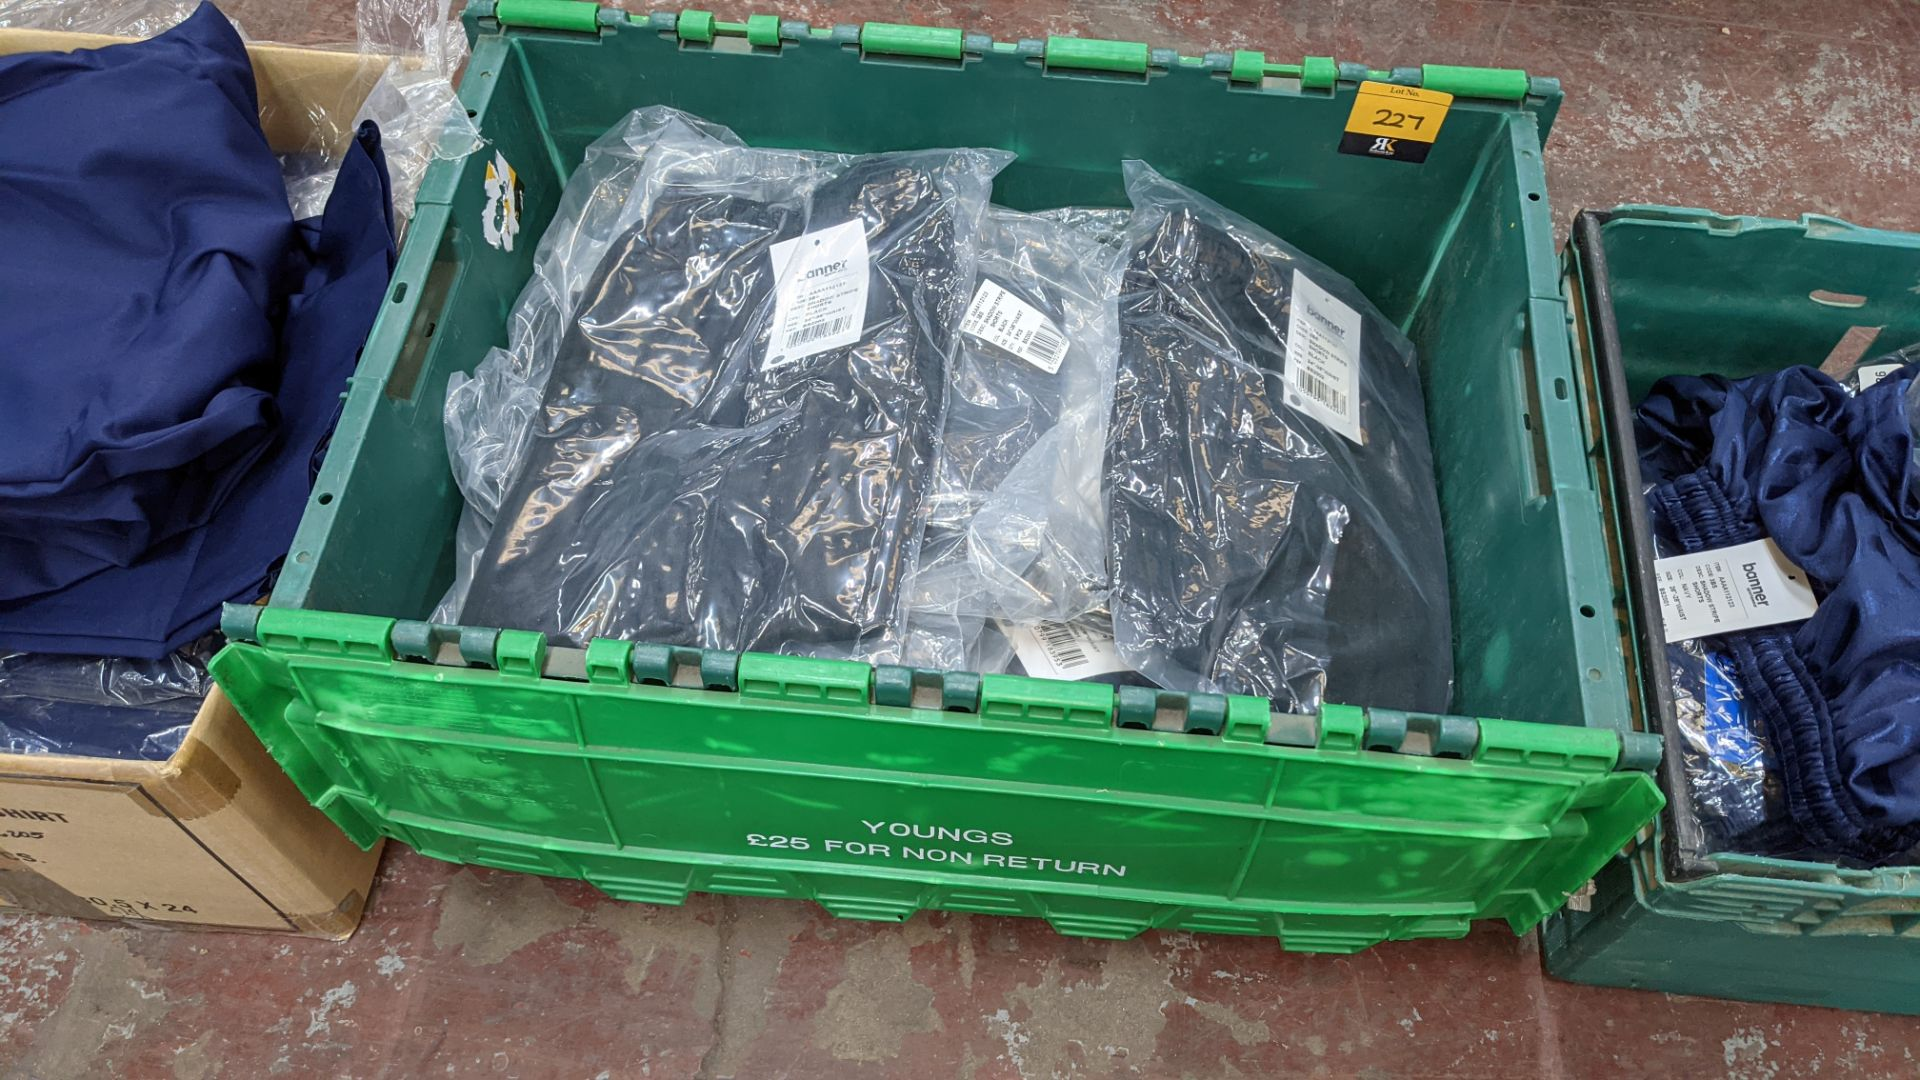 Approx 24 off Banner Sportswear black children's shorts - the contents of 1 crate. NB crate exclude